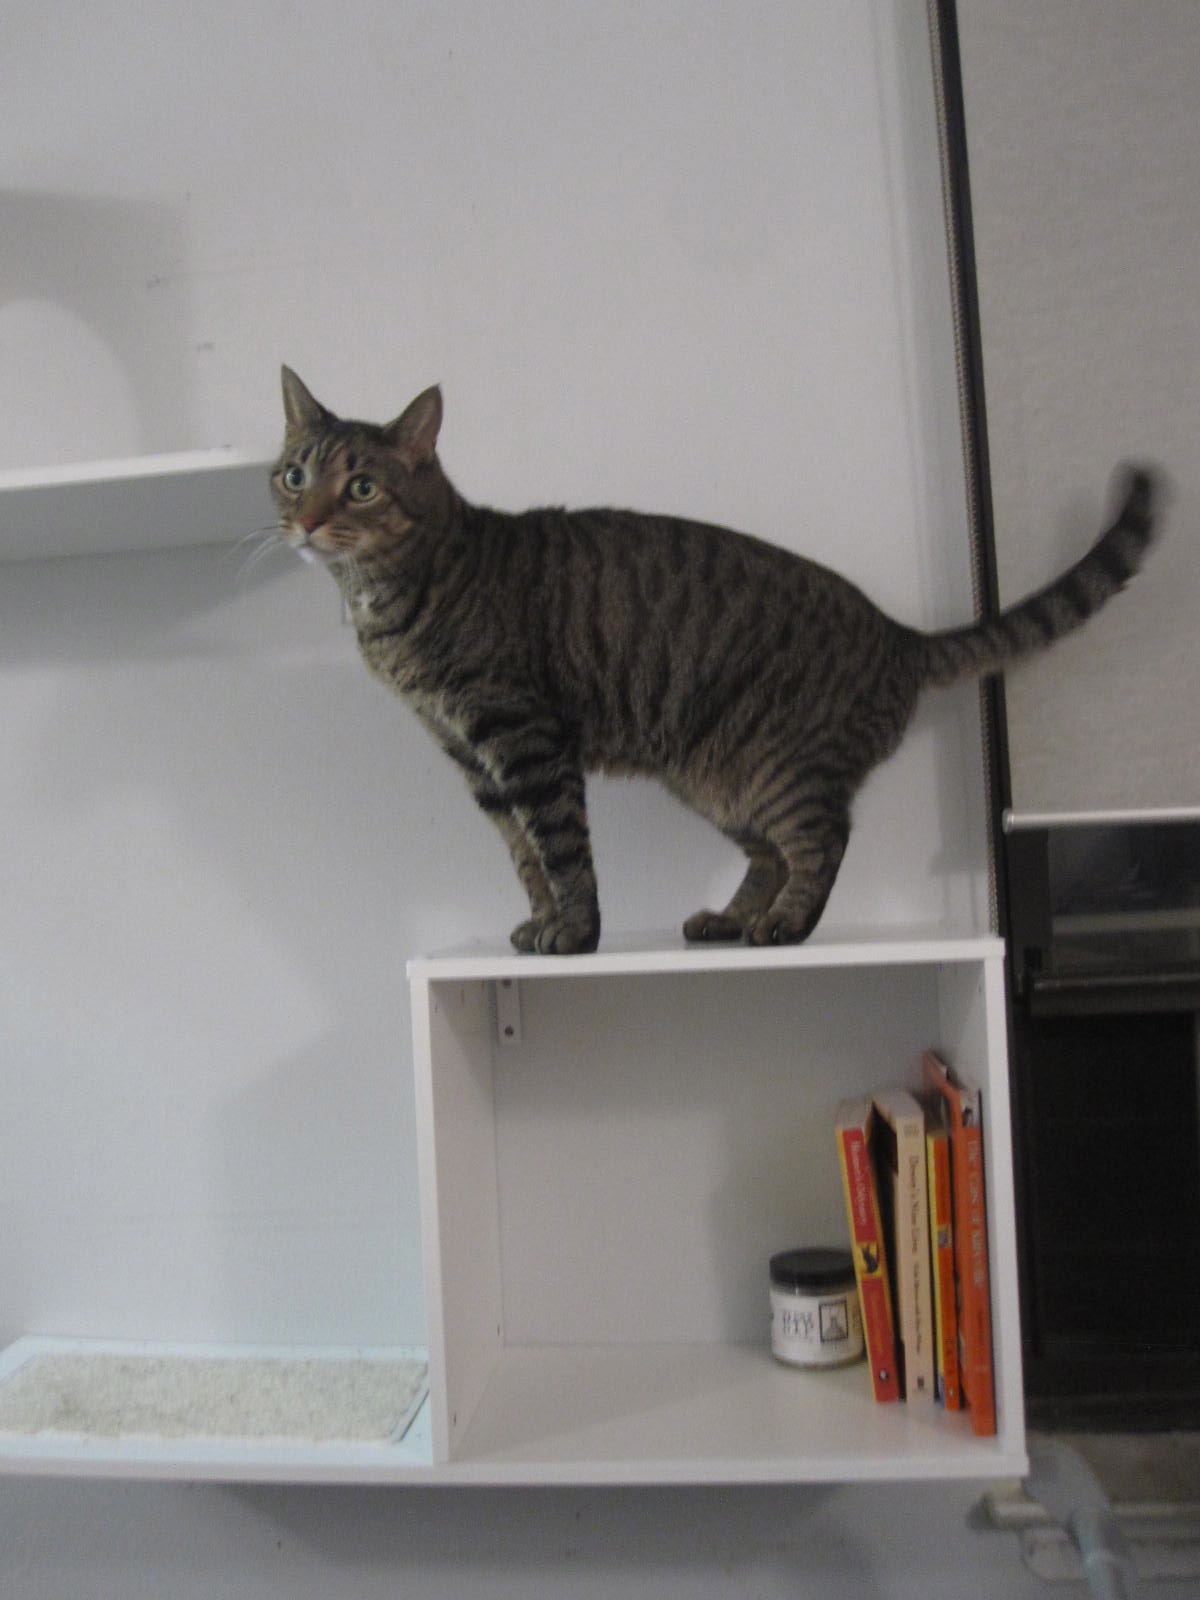 Cool Cat Shelves From Designer Pet Products I Have Cat